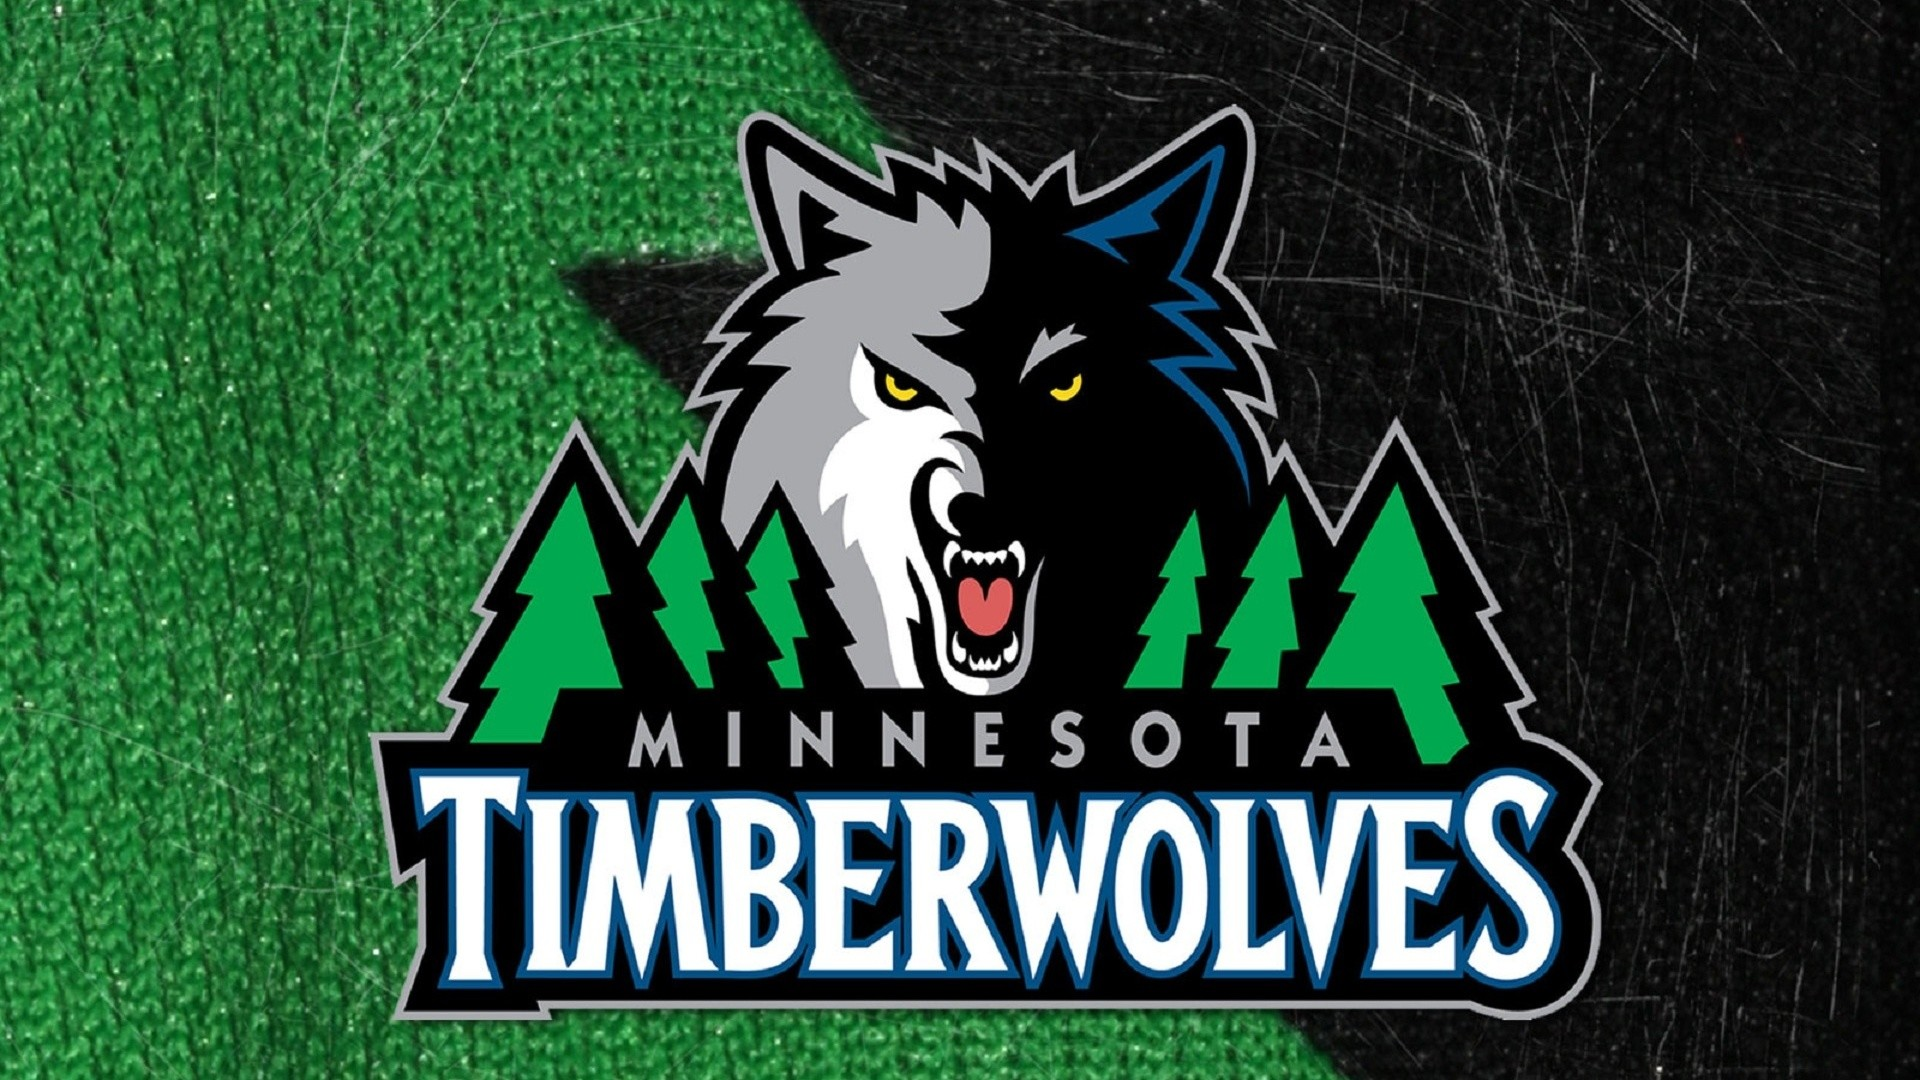 1920x1080 Minnesota Timberwolves Logo Wallpapers Group 1920×1080 Minnesota  Timberwolves Logo Wallpapers (44 Wallpapers)